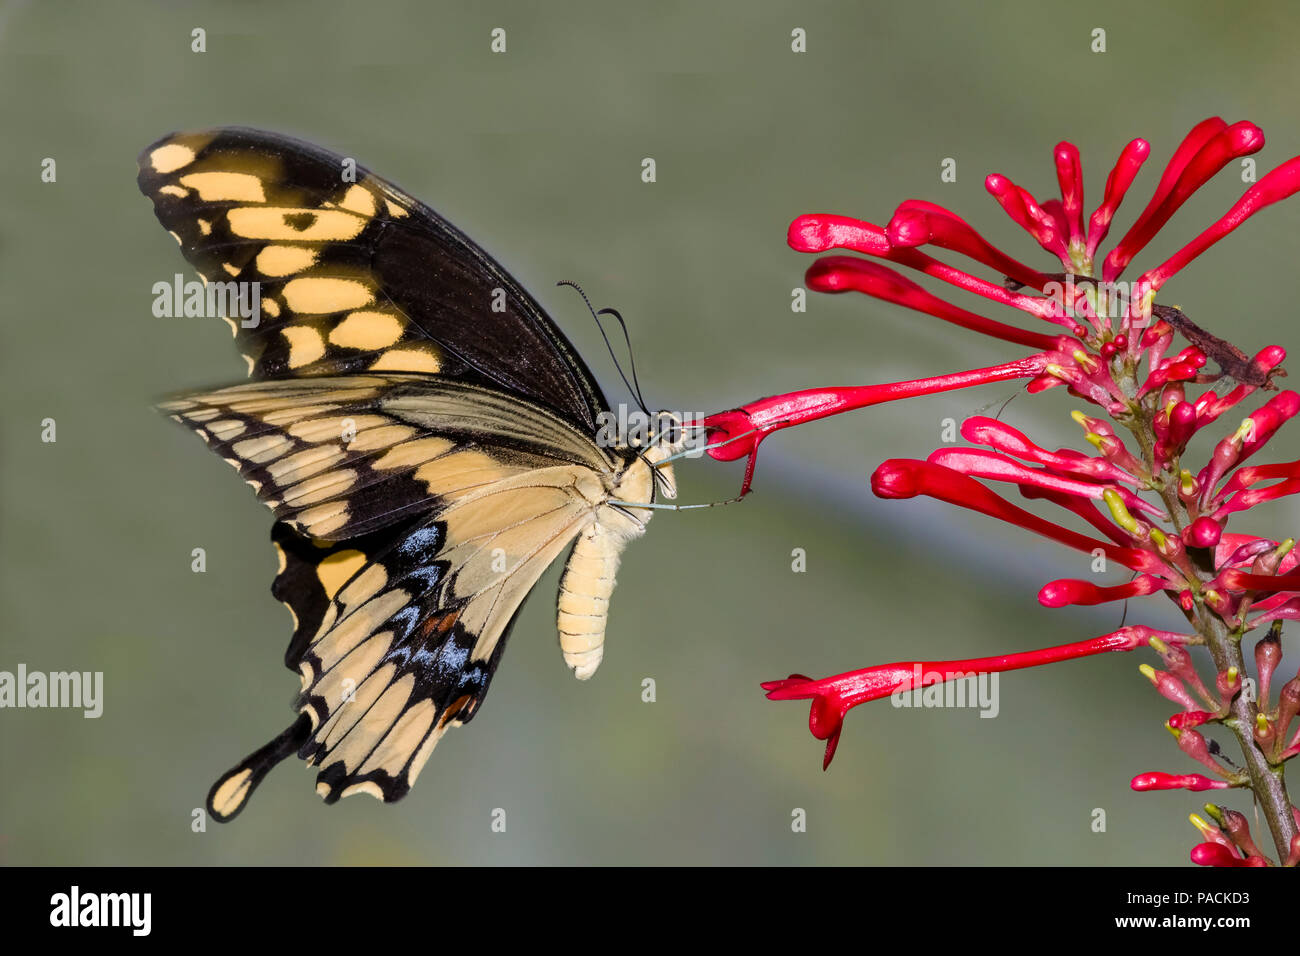 Gros plan du Swallowtai géant ( crespbontes ) Papilio papillon sur fleur rouge Photo Stock